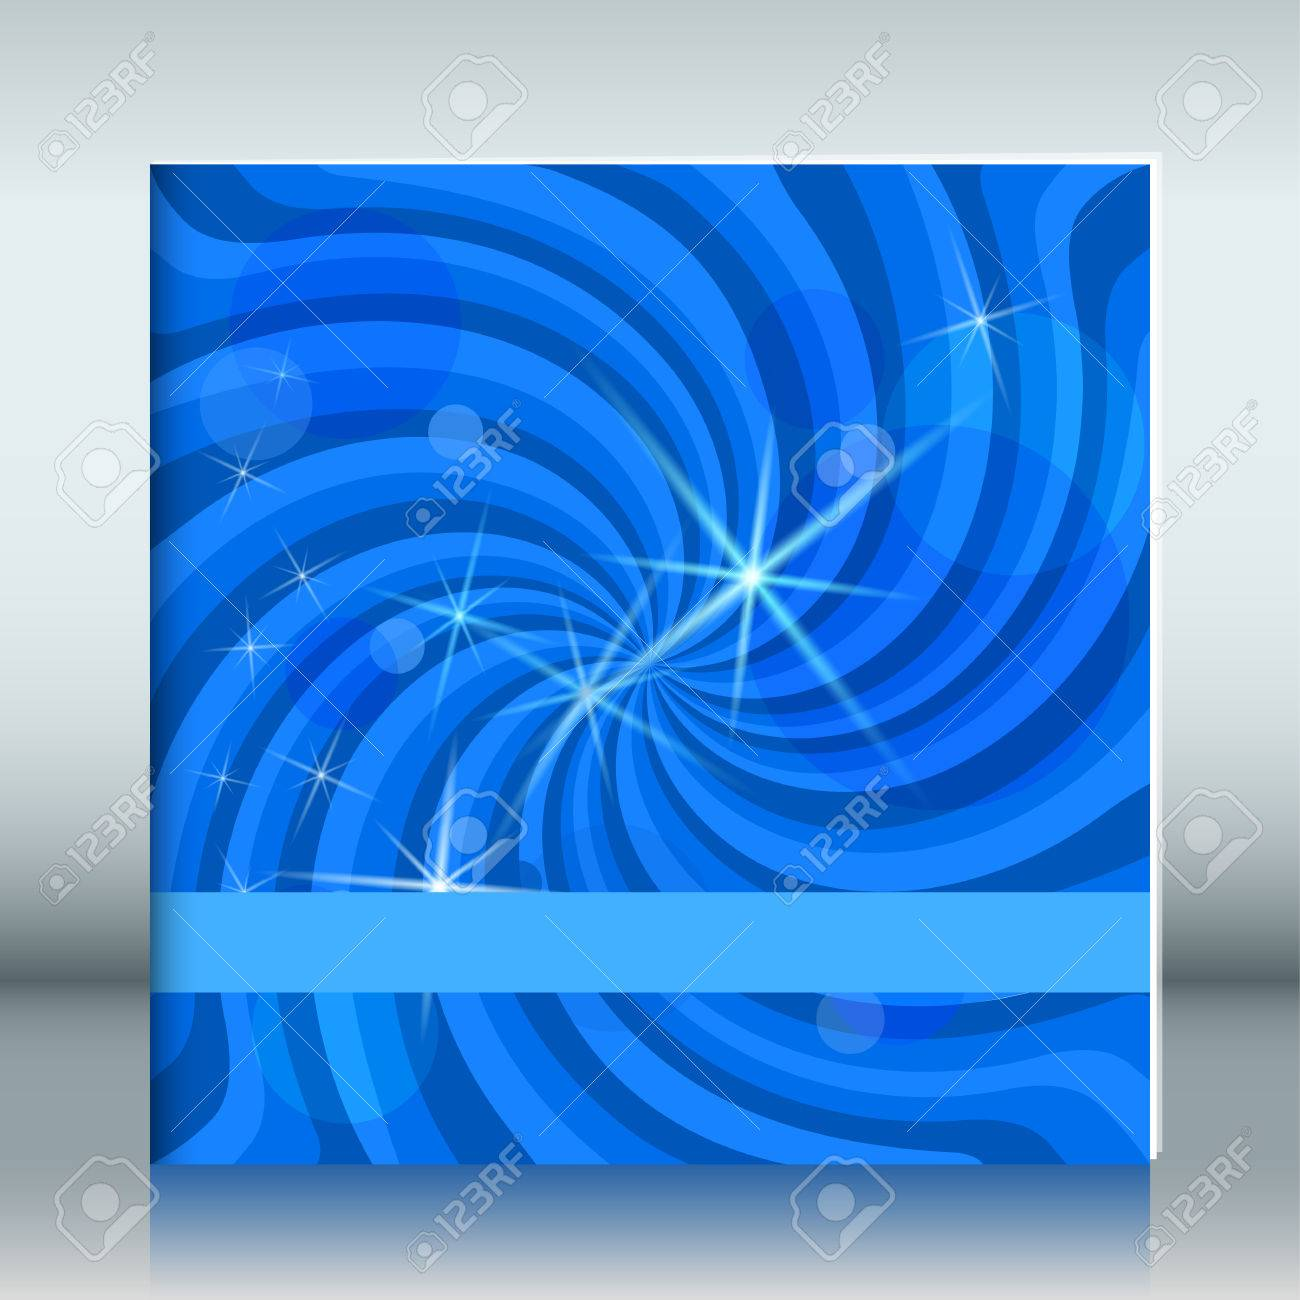 Cover page designs for school projects note book cover page design - Blue Swirl Magic Stars For Kids Cover Notebook Vector Illustration For Your Lovely Fine